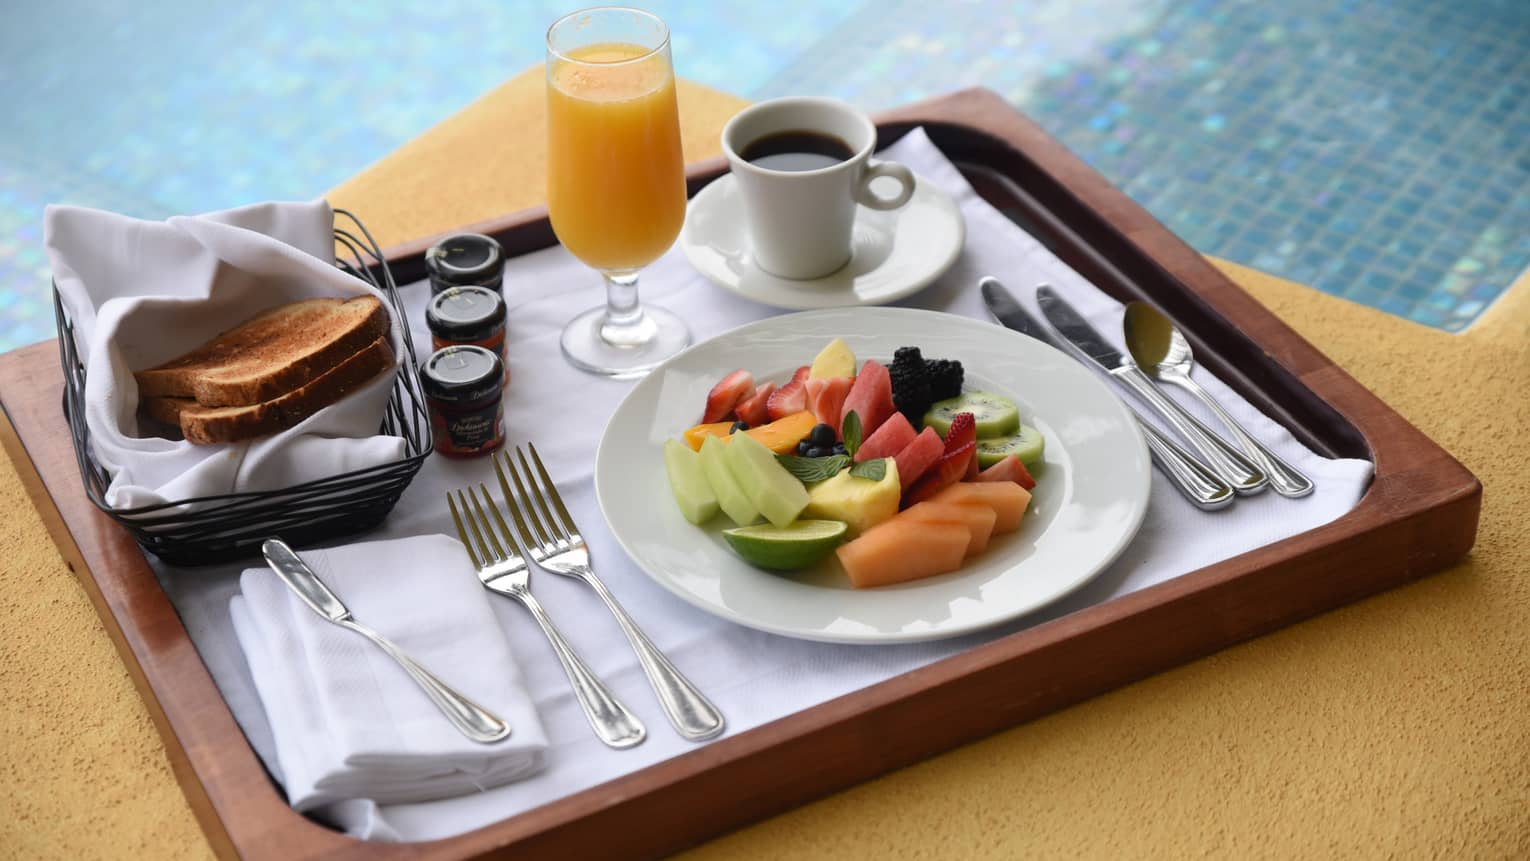 Fresh fruit slices on plate, coffee, orange juice, toast on wood tray by pool